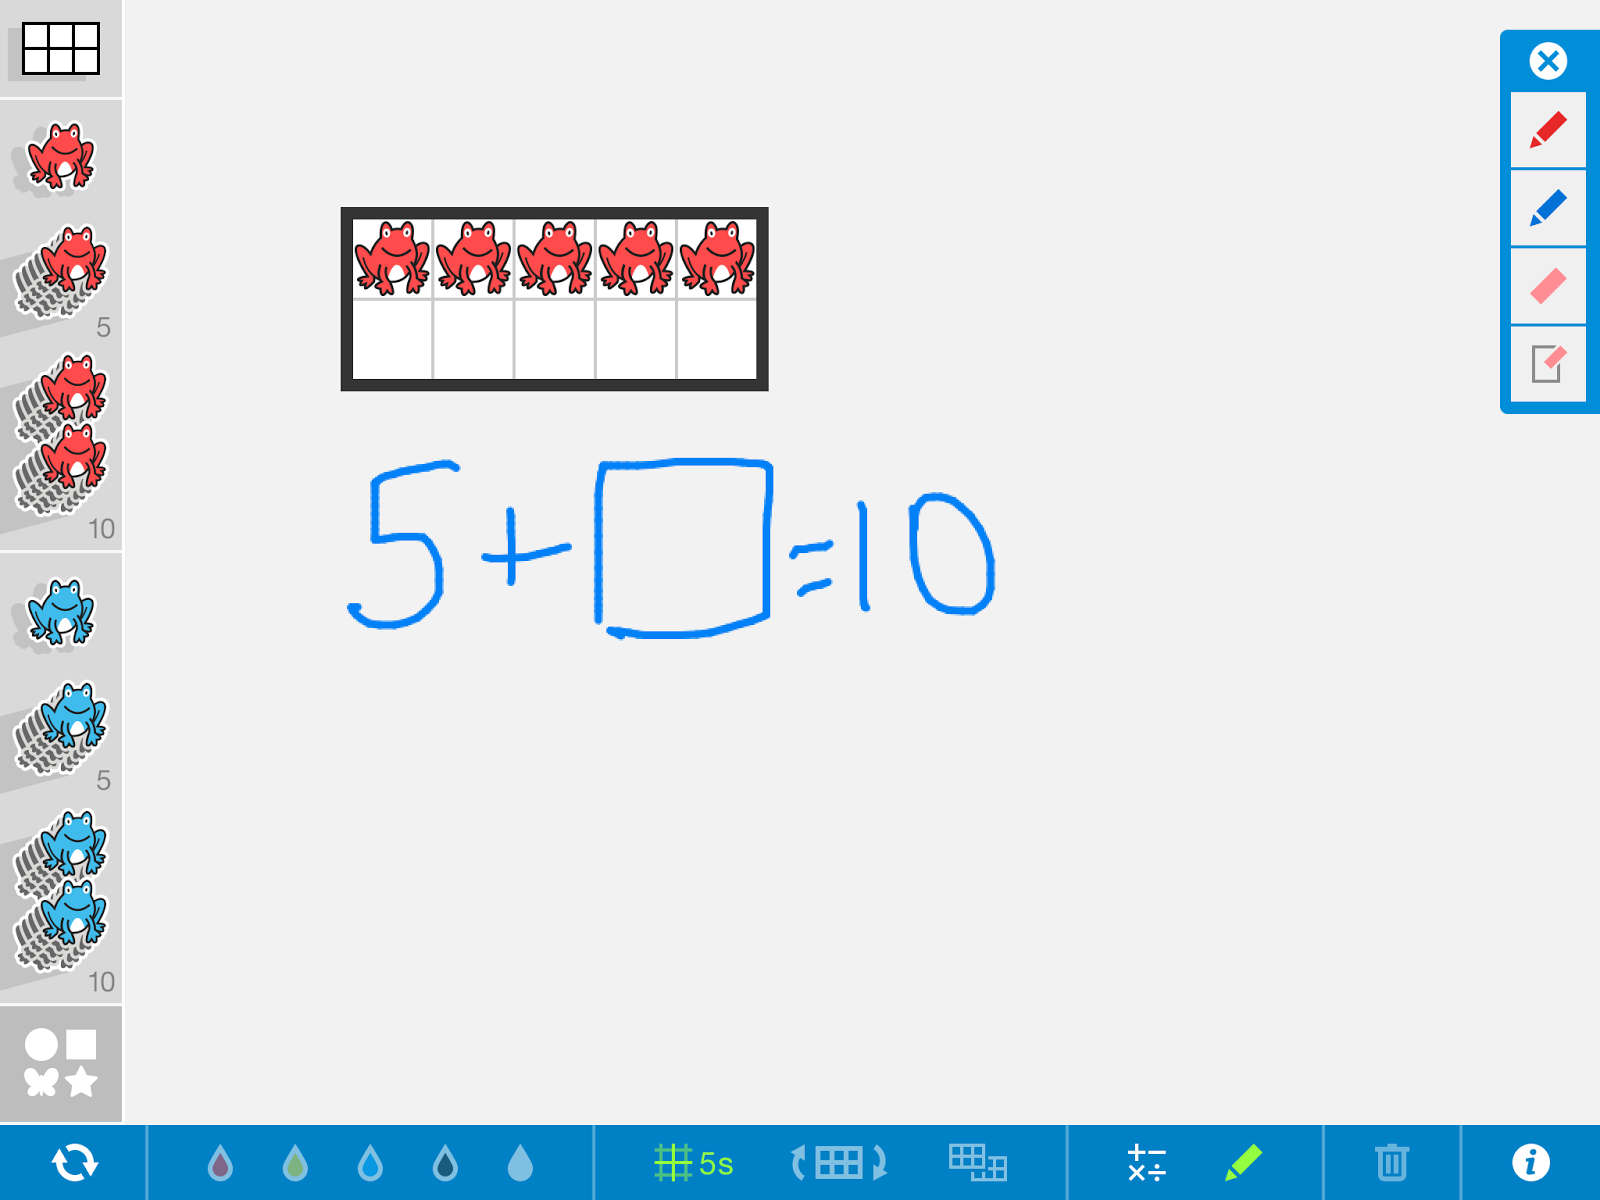 Number Frames App ~ Engaging Tech Tools for 21st Century Learners